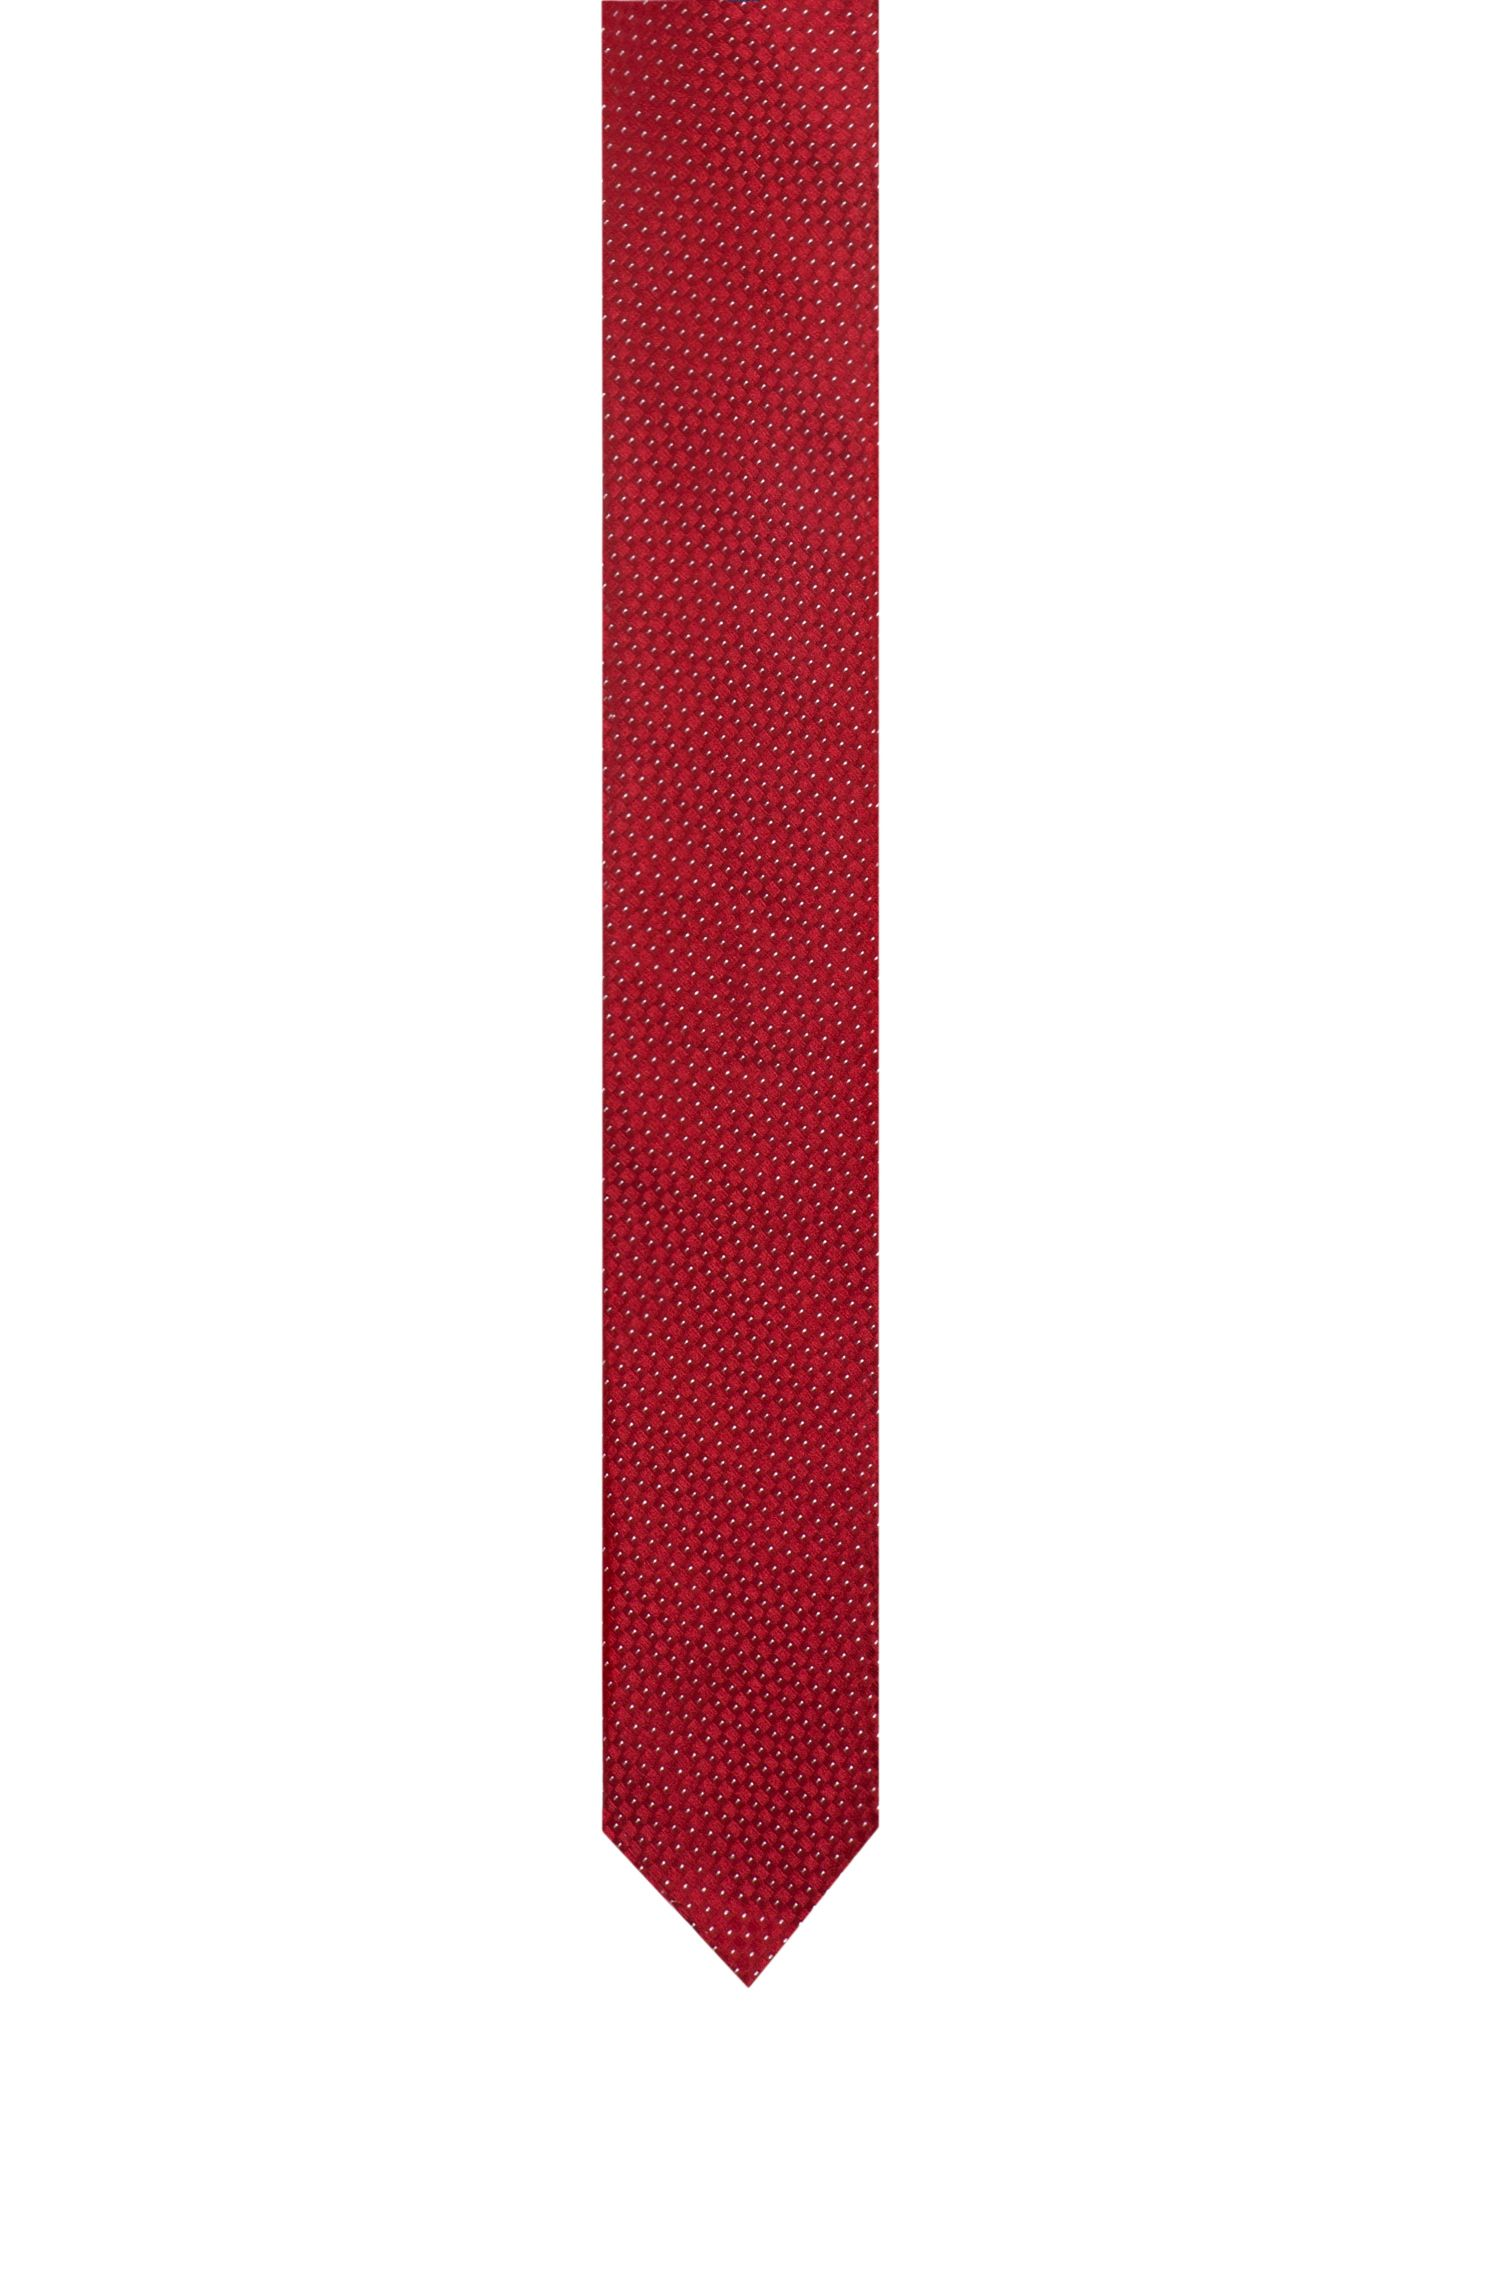 Silk jacquard tie with micro-pattern